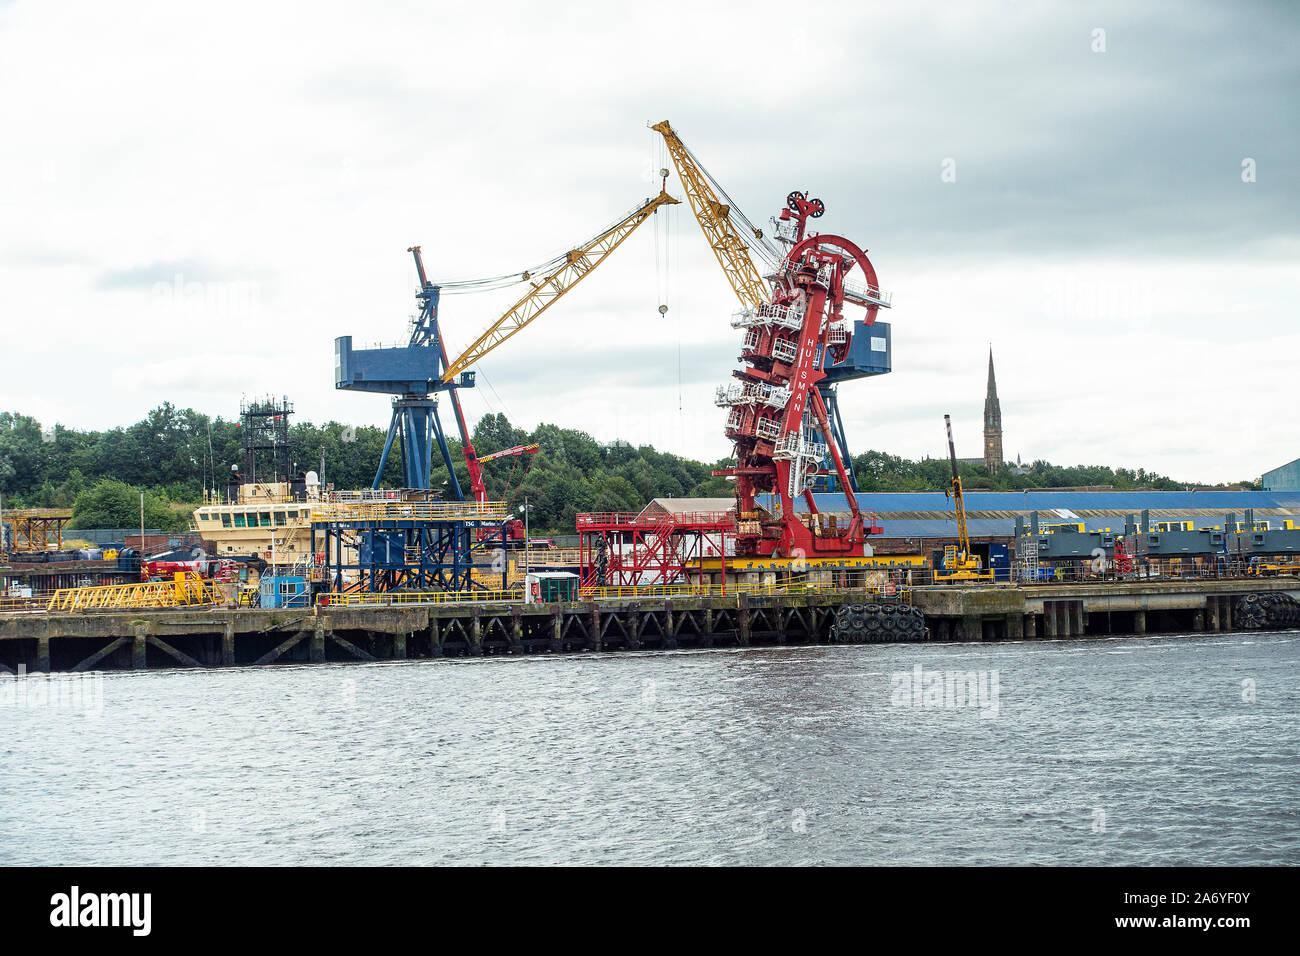 A & P Engineering Global Ship Repair Yard on the River Tyne at Hebburn Tyne and Wear England United Kingdom UK Stock Photo